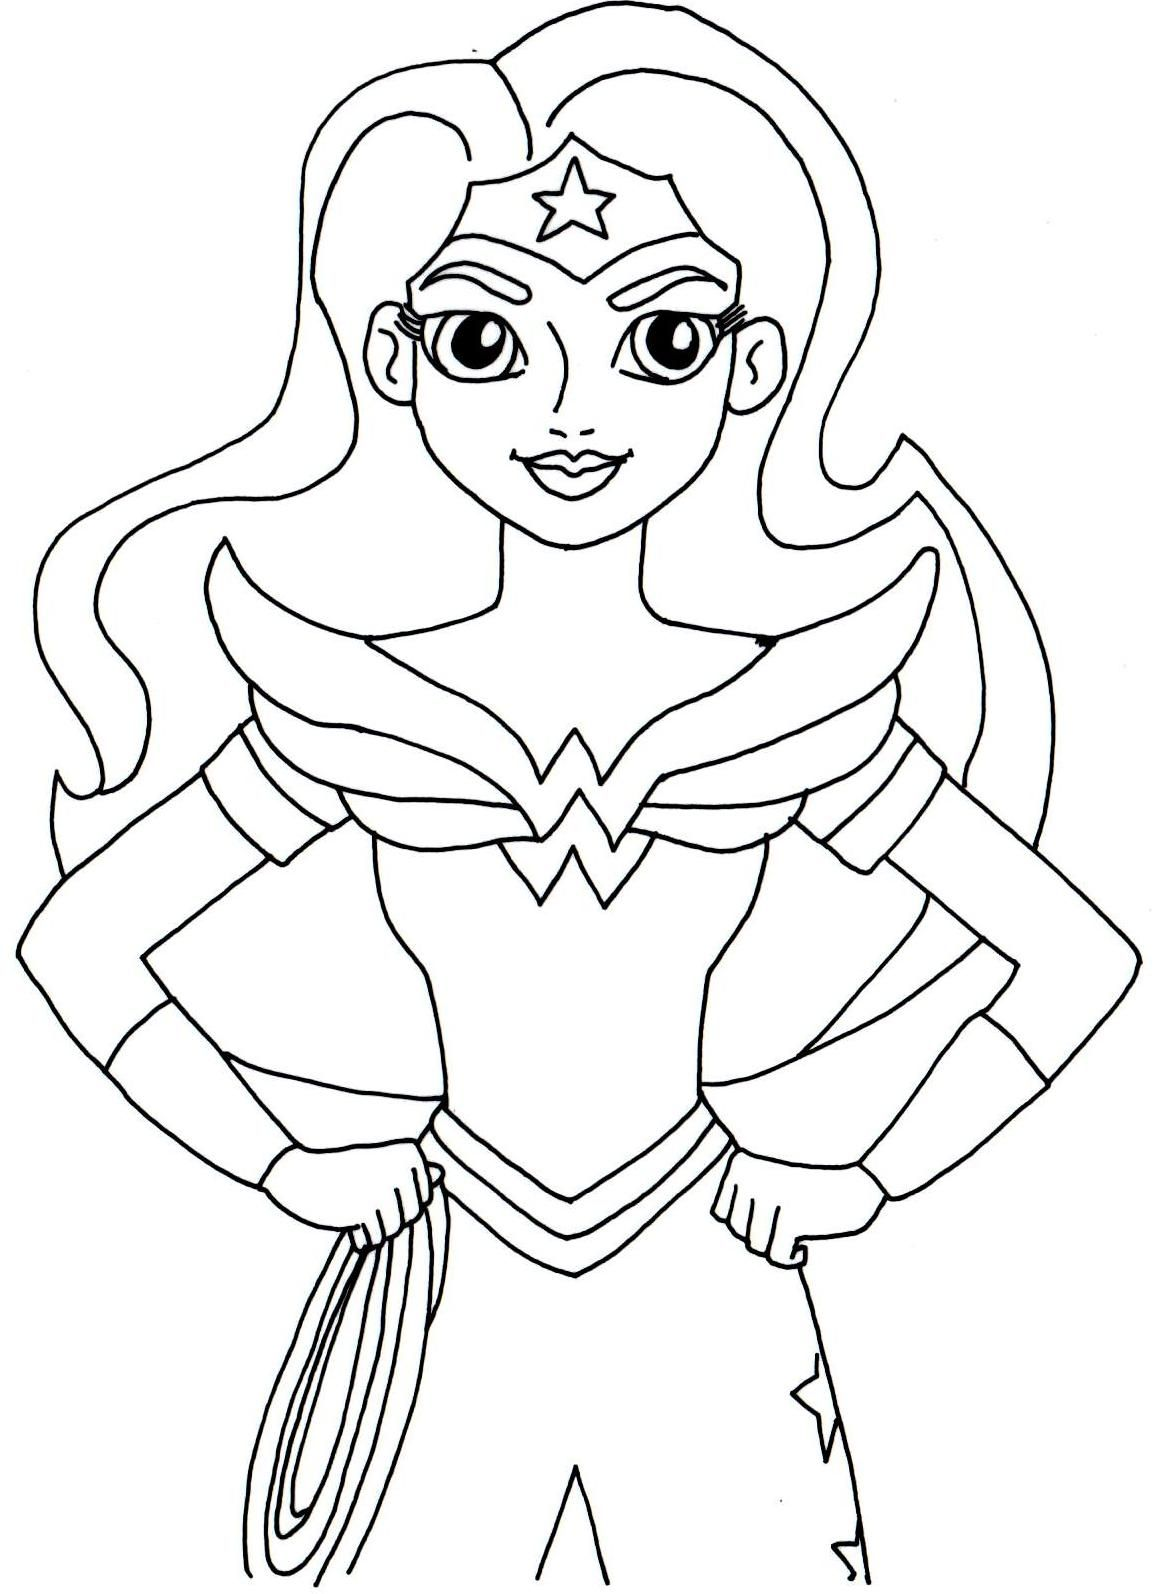 girl superheroes coloring pages Wonder Woman Coloring Pages | Wonder Woman Birthday Party  girl superheroes coloring pages